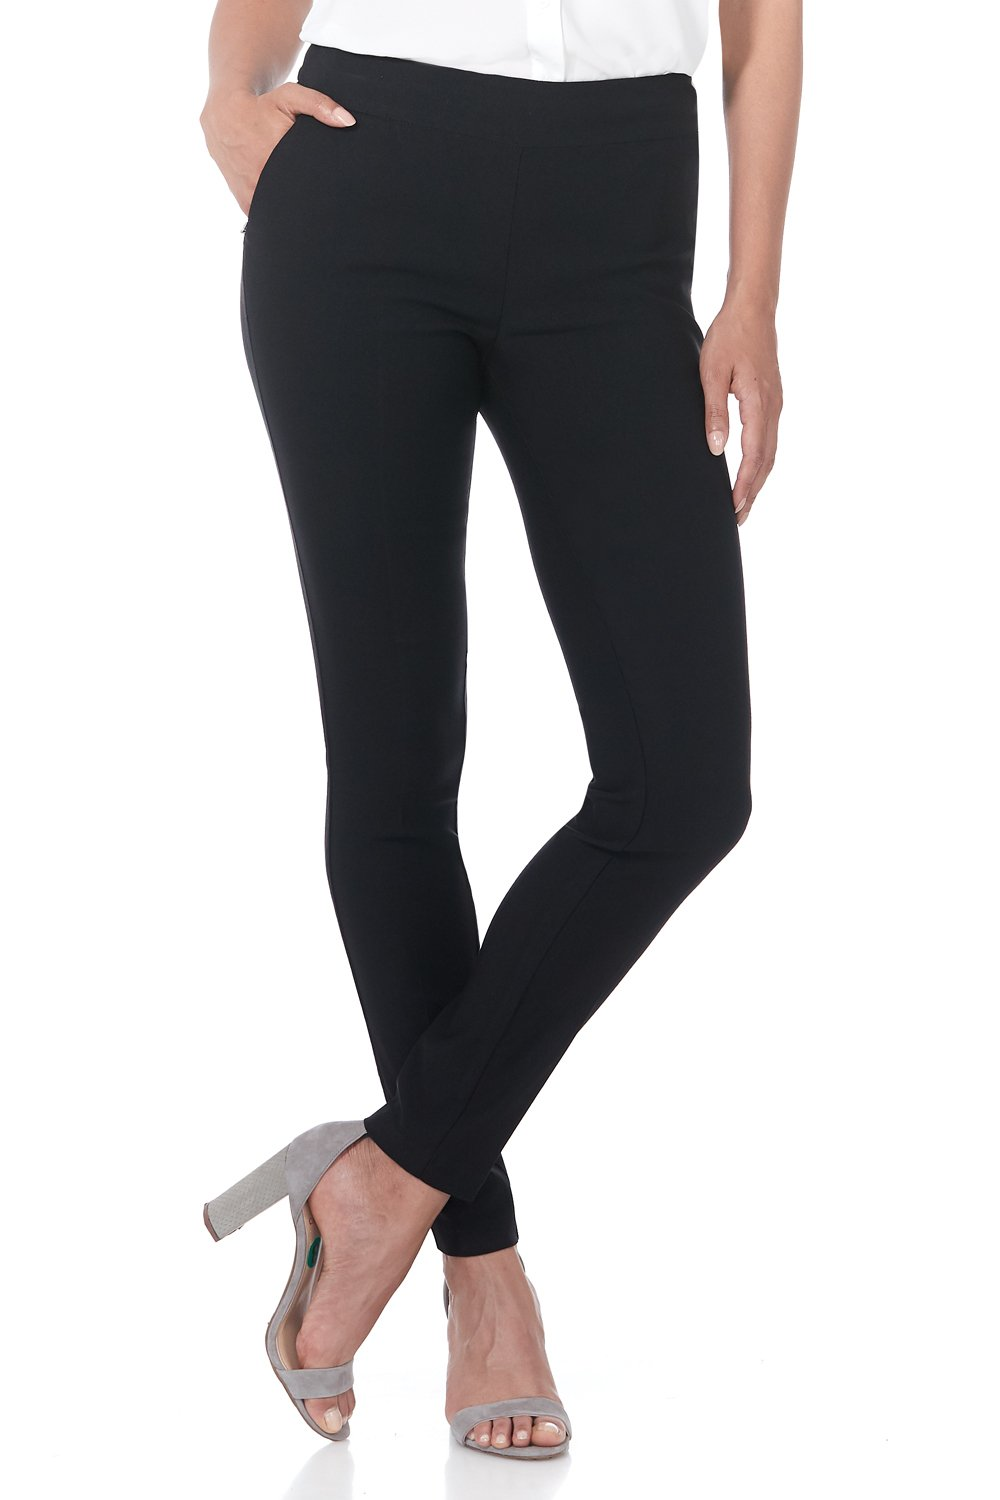 Rekucci Women's Ease in to Comfort Modern Stretch Skinny Pant w/Tummy Control (16,Black)